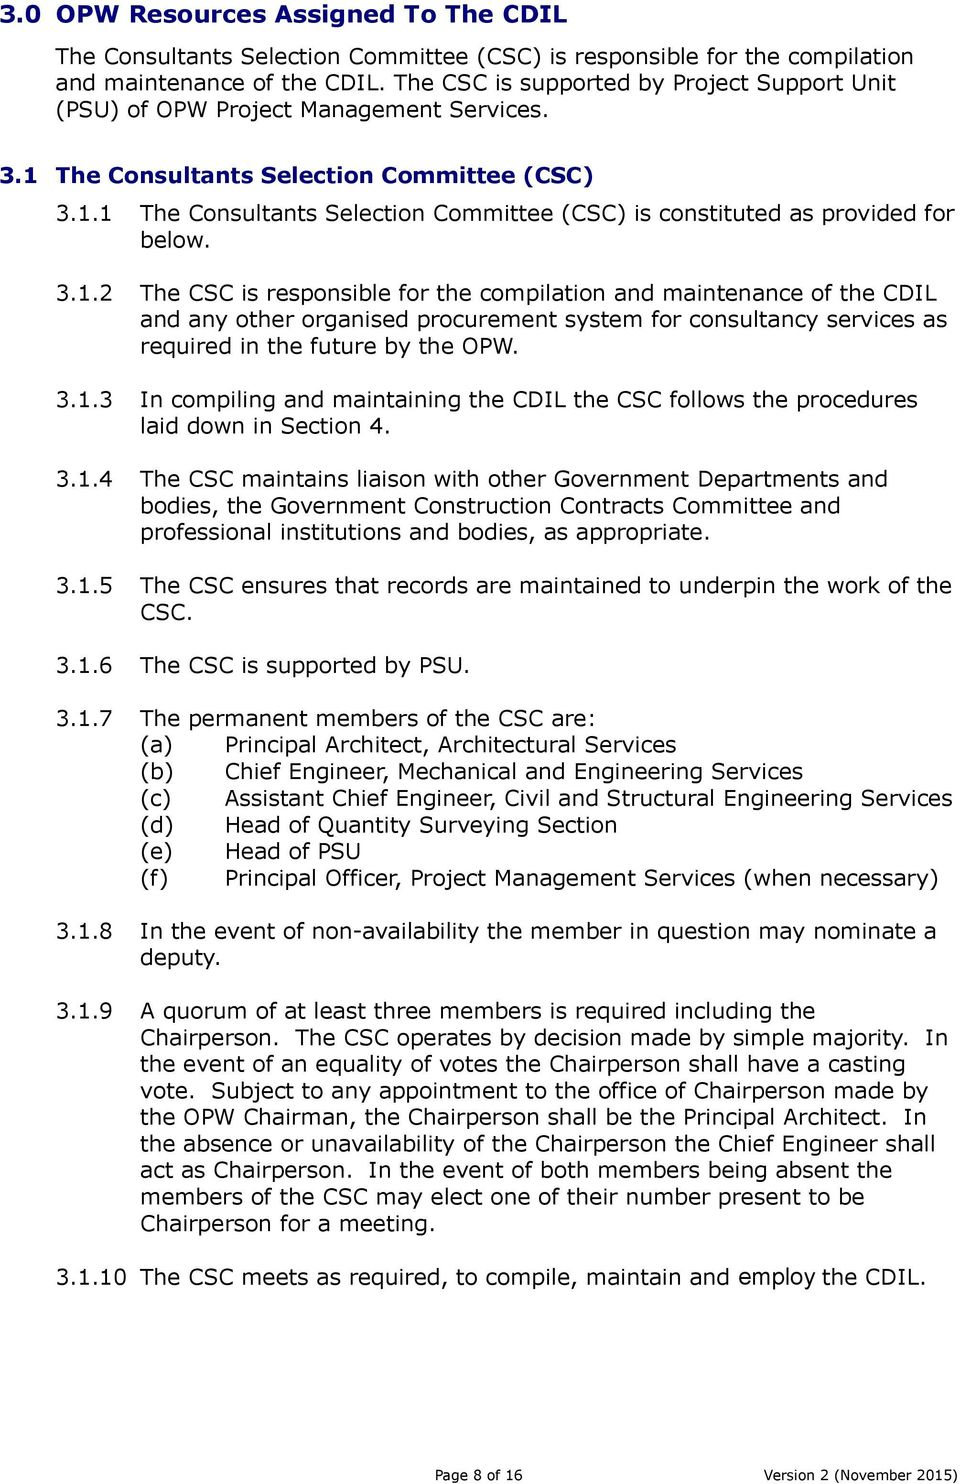 3.1.2 The CSC is responsible for the compilation and maintenance of the CDIL and any other organised procurement system for consultancy services as required in the future by the OPW. 3.1.3 In compiling and maintaining the CDIL the CSC follows the procedures laid down in Section 4.